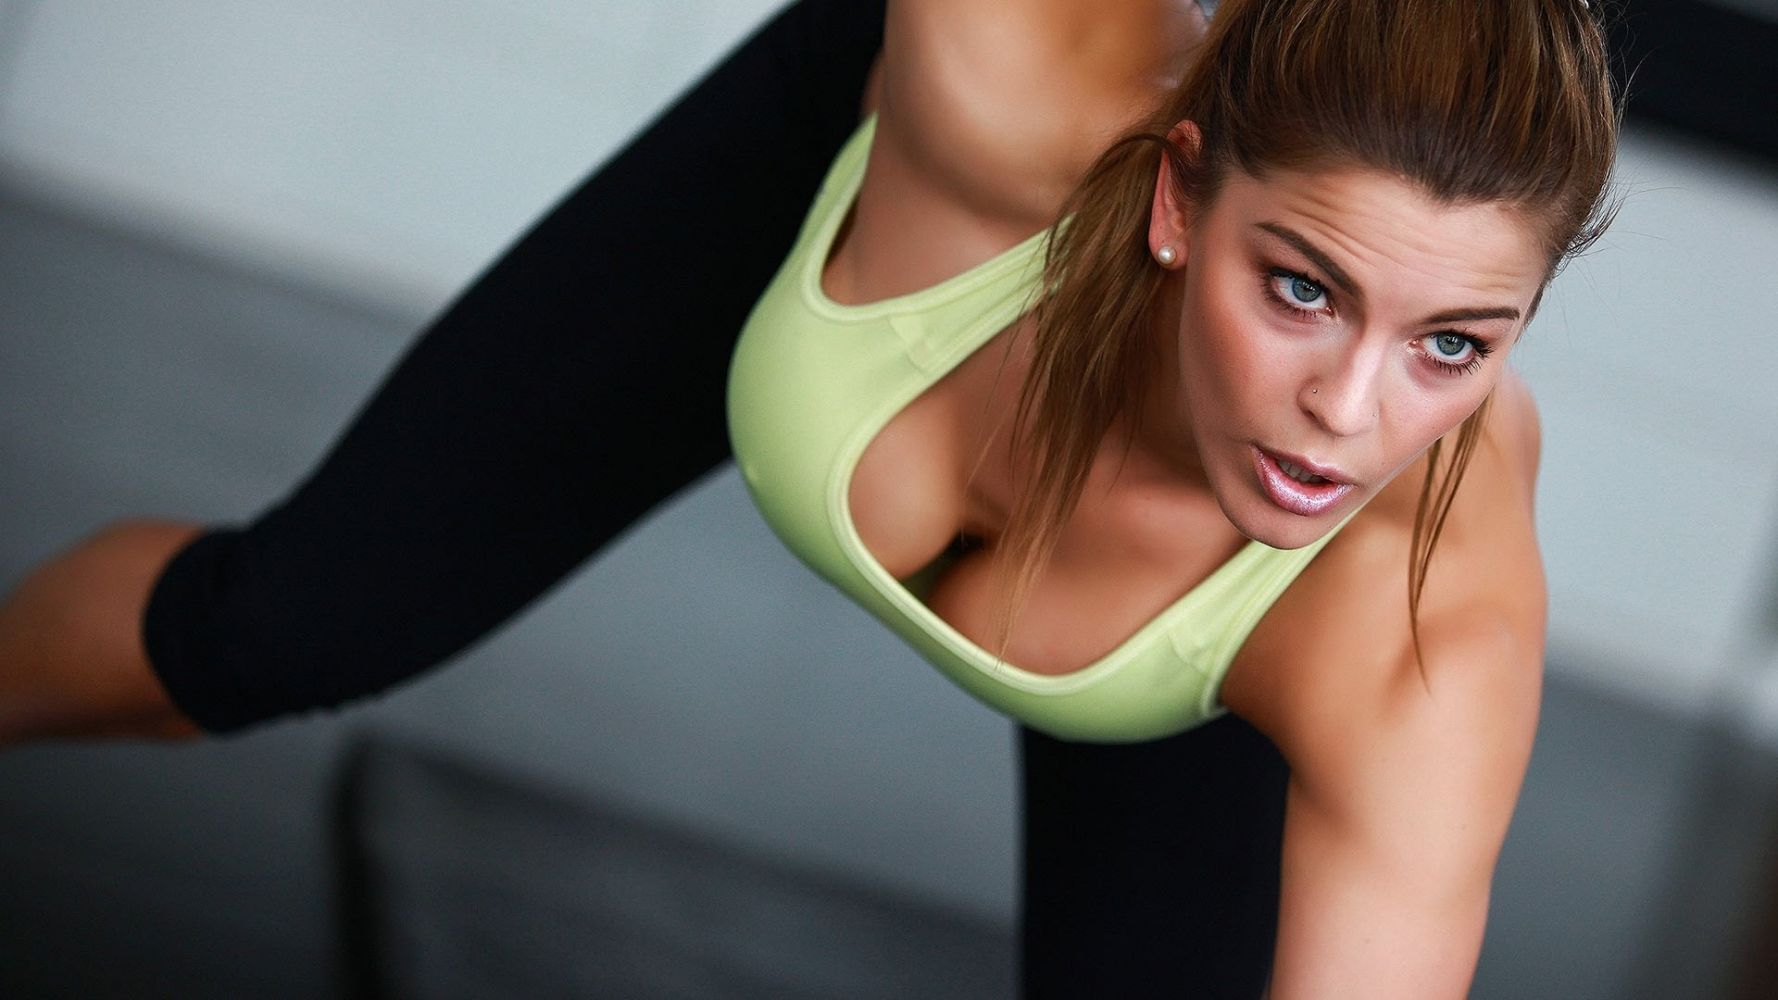 Sexy Beautiful Young Women Working Out Stock Photo